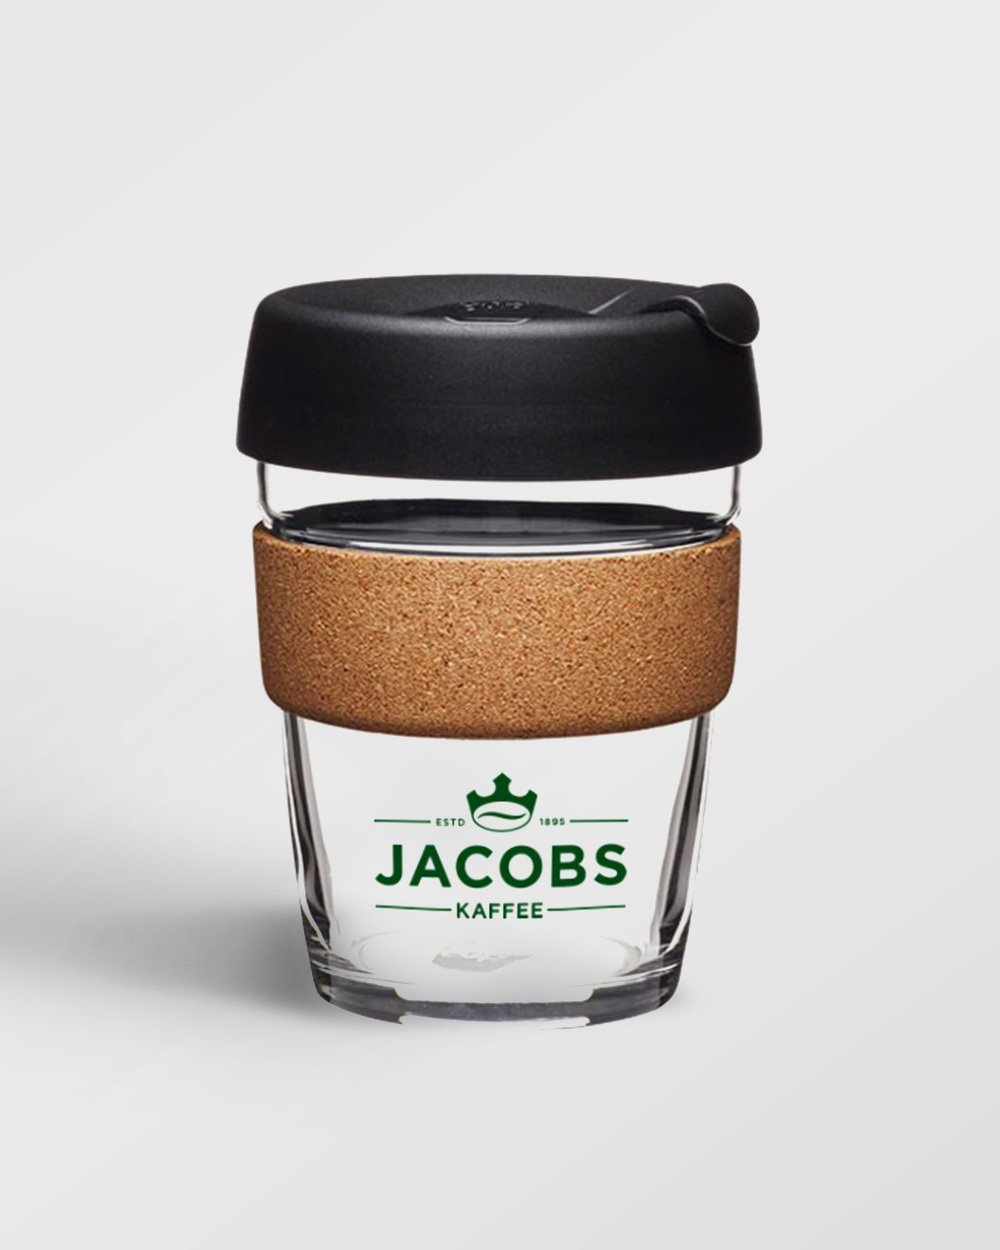 Jacobs Kaffee KeepCup KeepCup - Johann Jacobs Haus